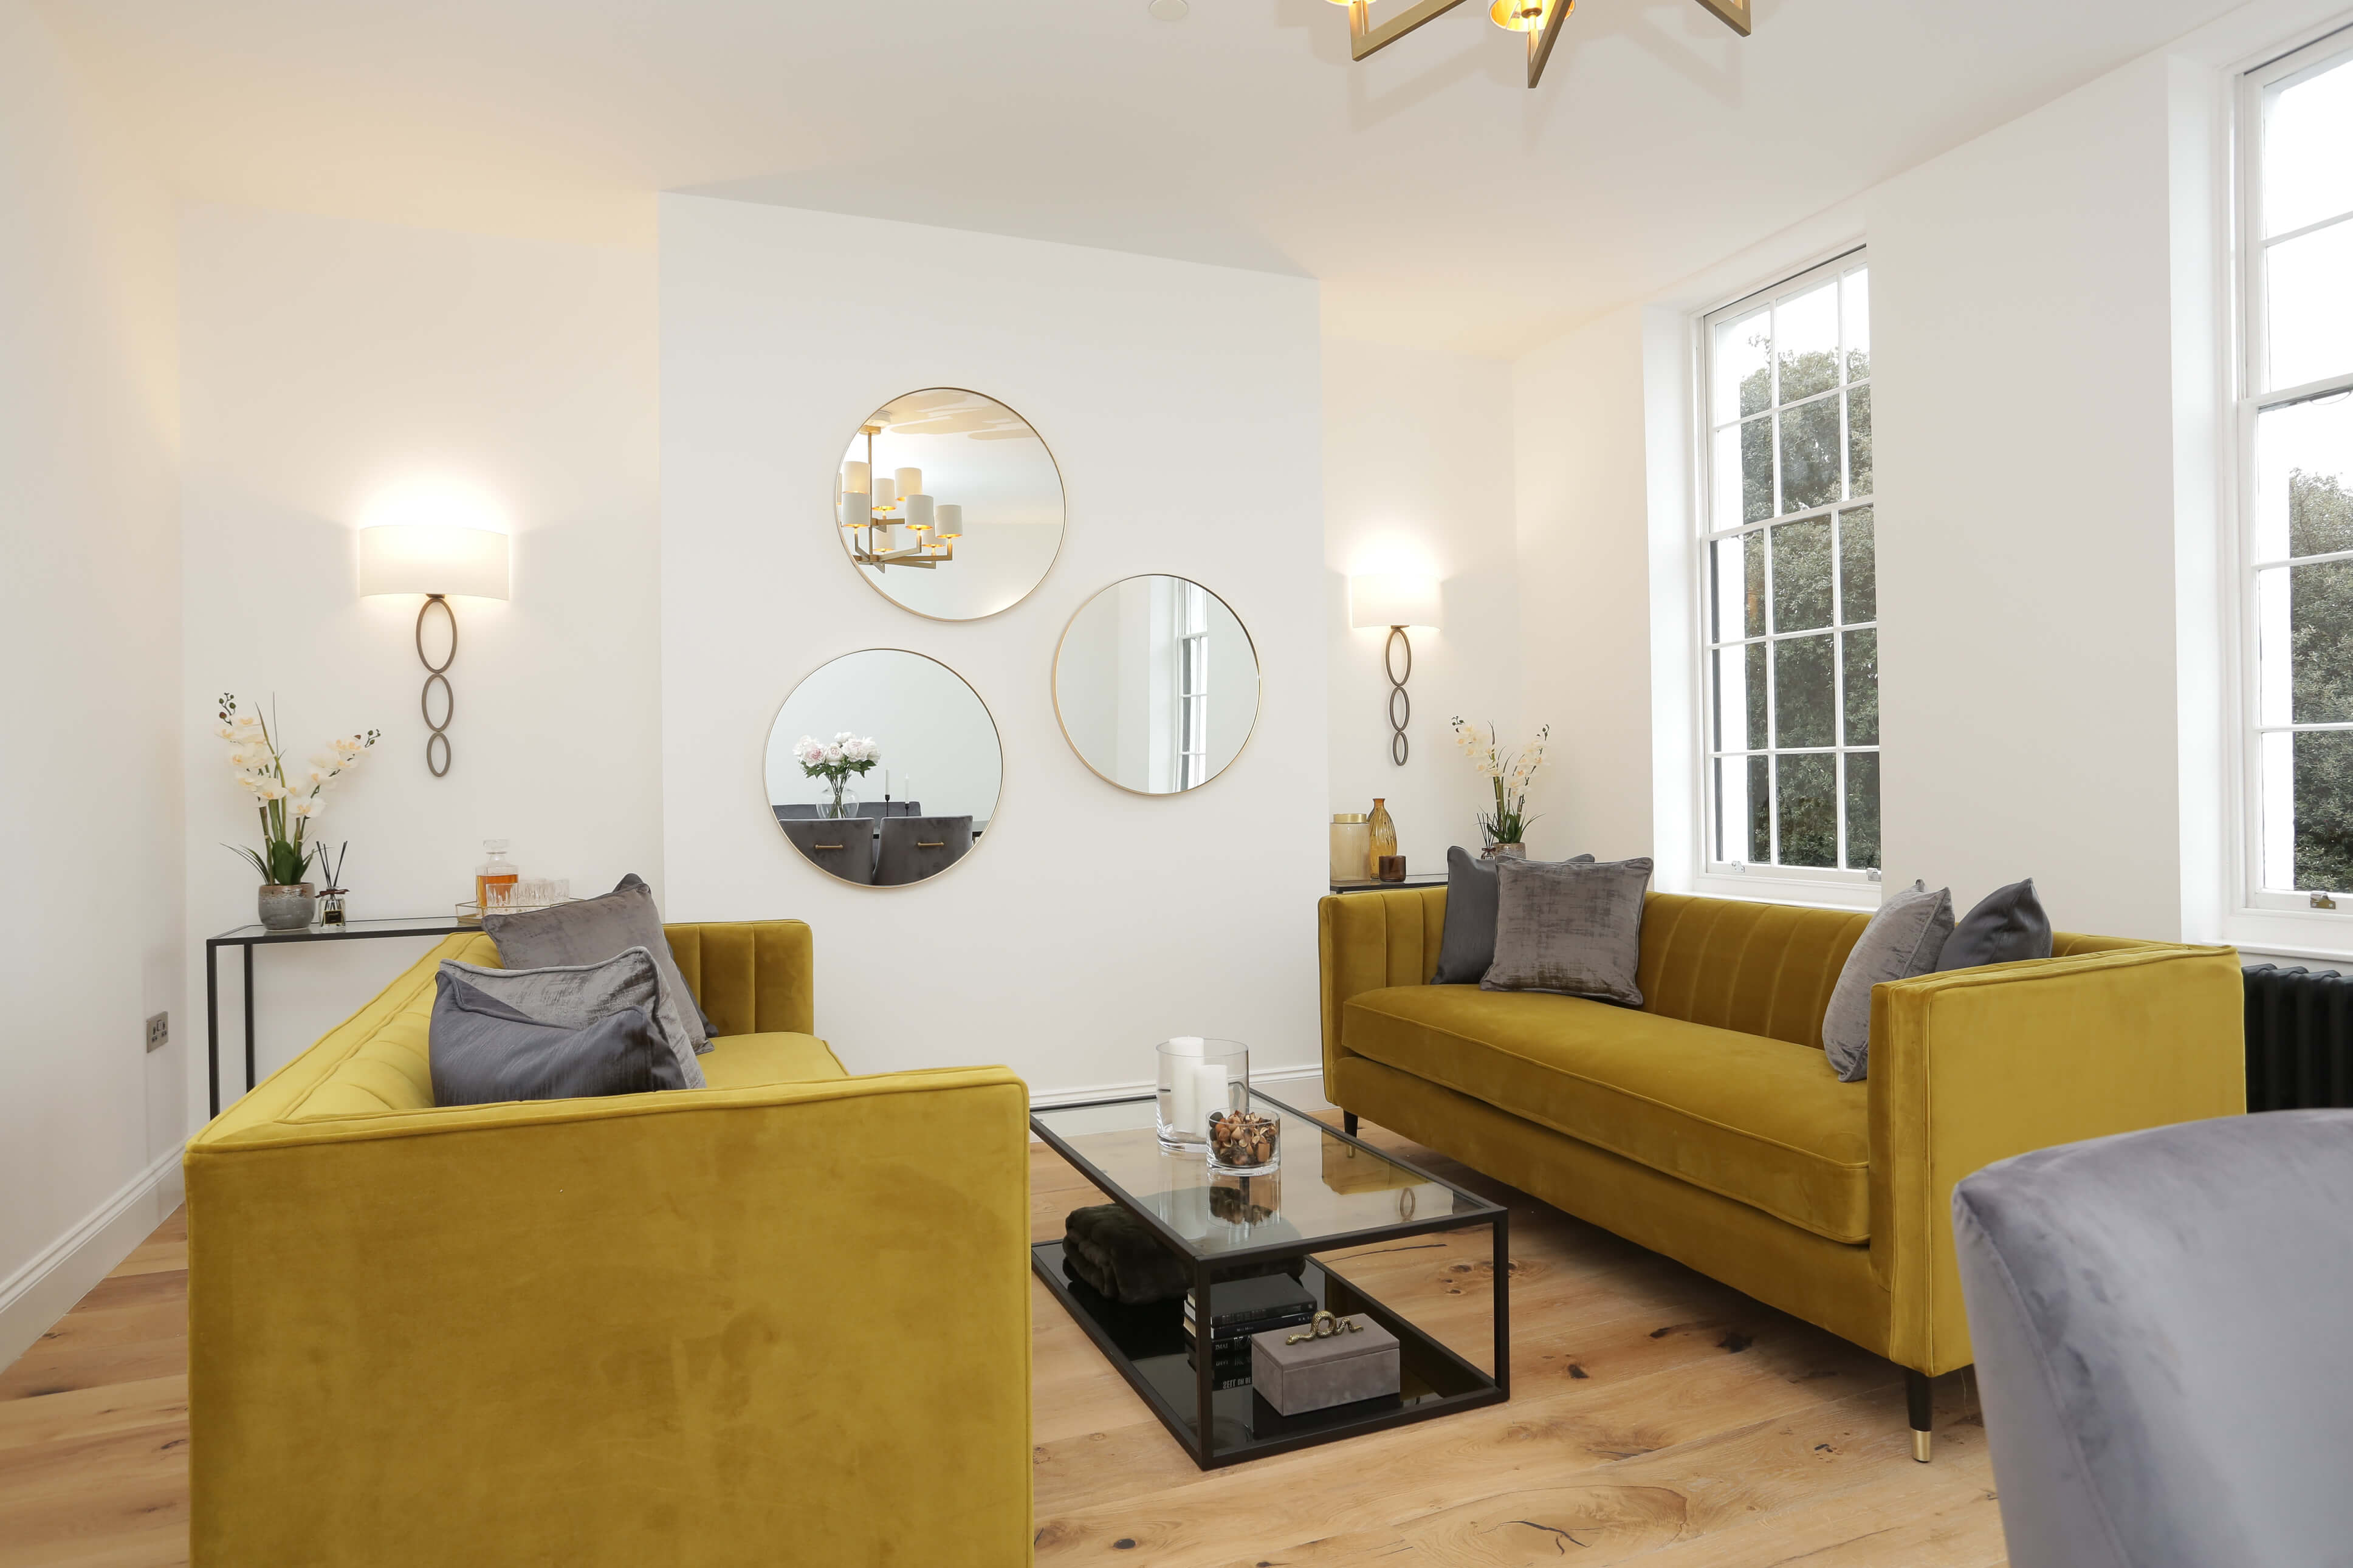 wide angle of contemporary living room with sofa seating, light fittings and mirrors